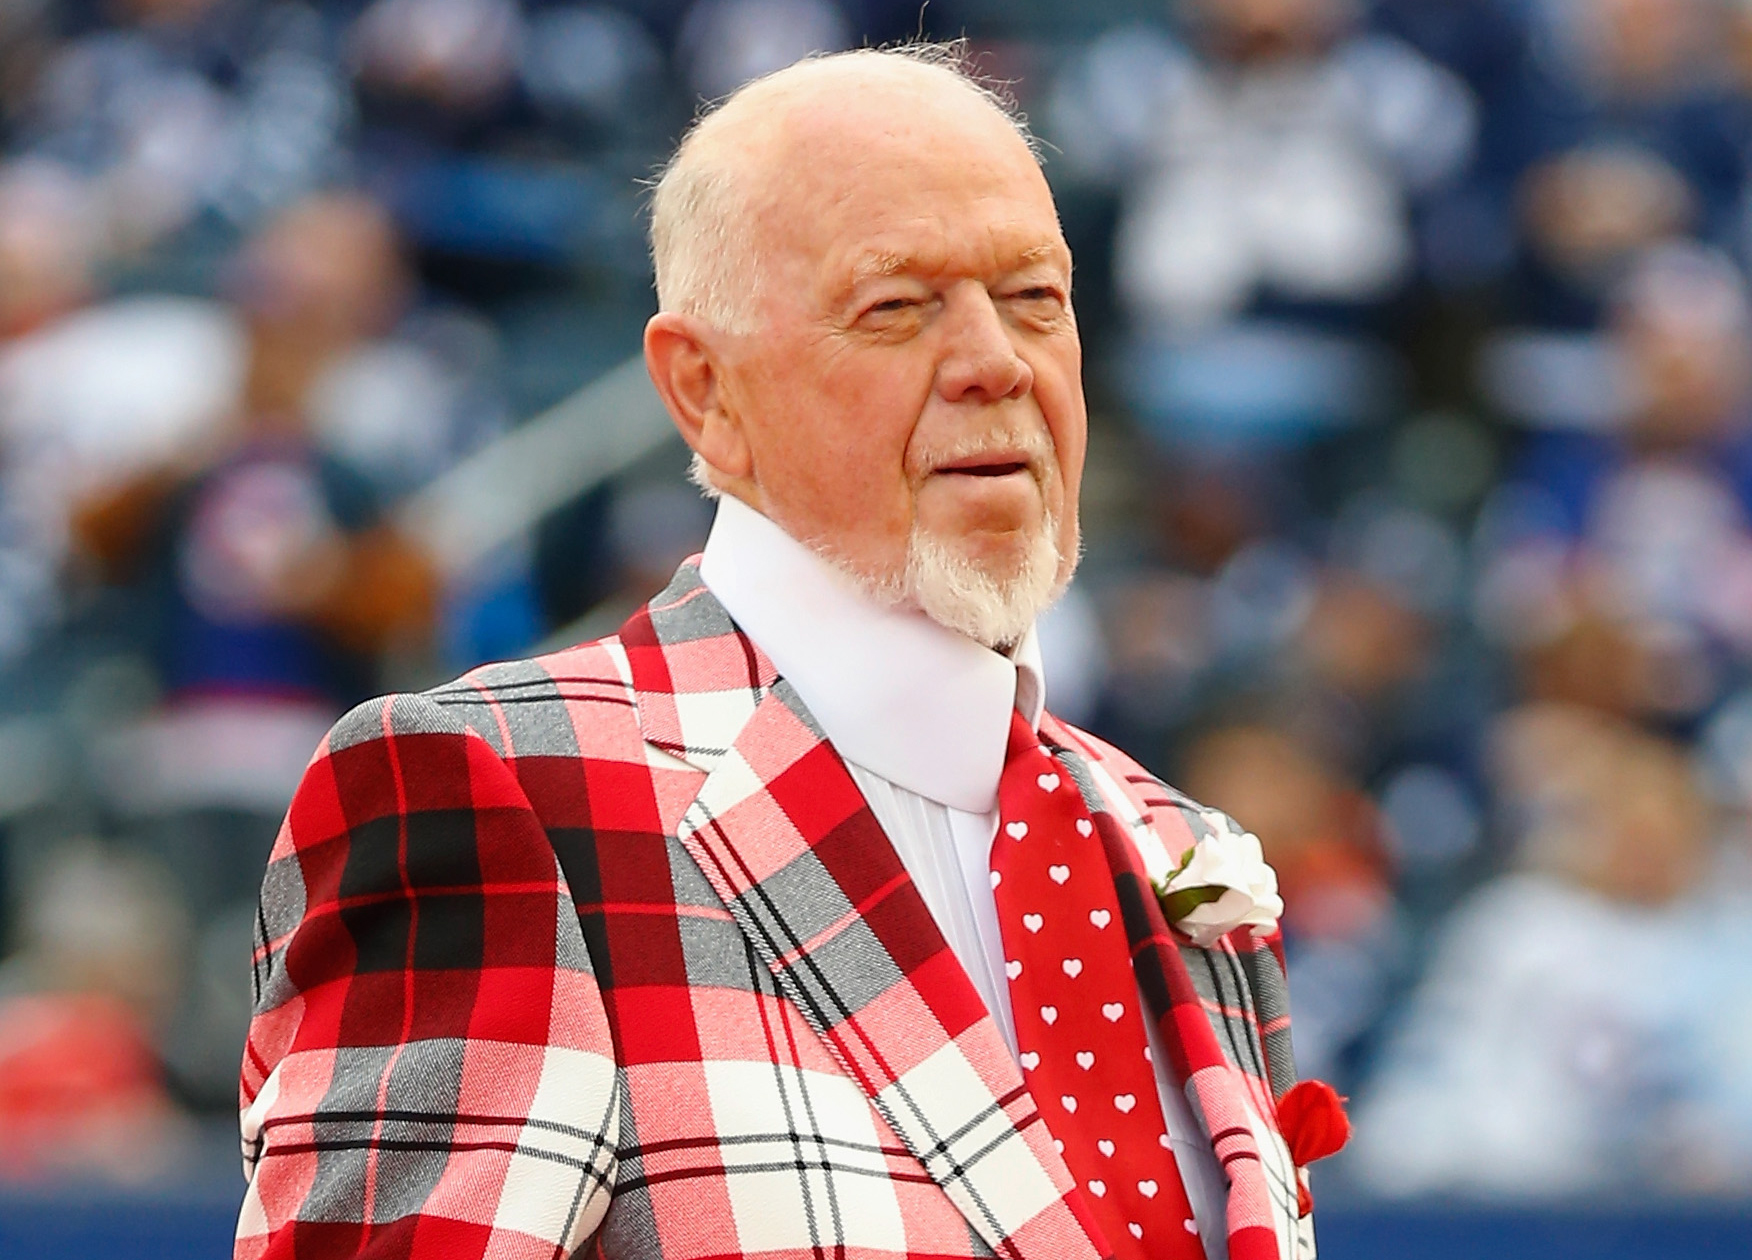 https://media2.s-nbcnews.com/i/newscms/2019_46/3094851/191111-don-cherry-mn-1610_39a5cfa0c6526320c4838640663d859f.jpg